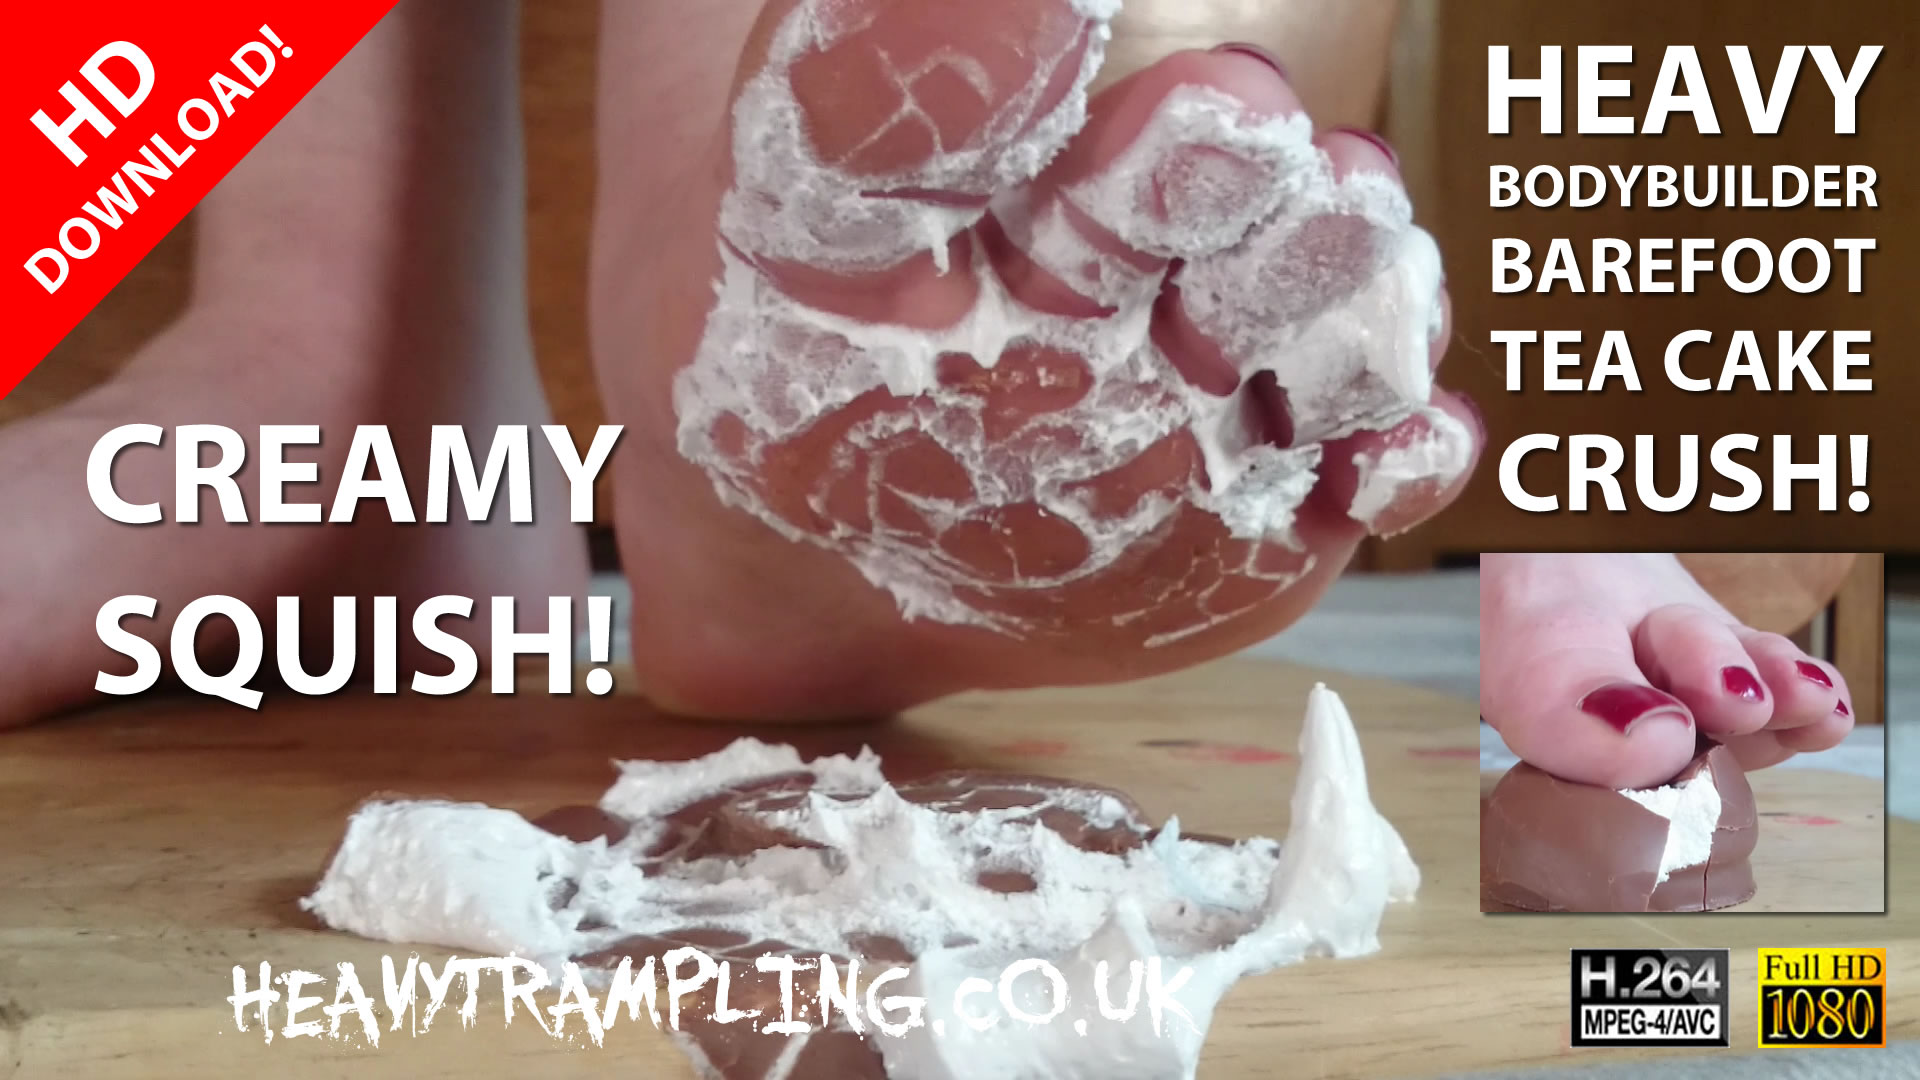 Crushing: 5 Min Heavy Female Bodybuilder Barefoot Tea Cake Crush